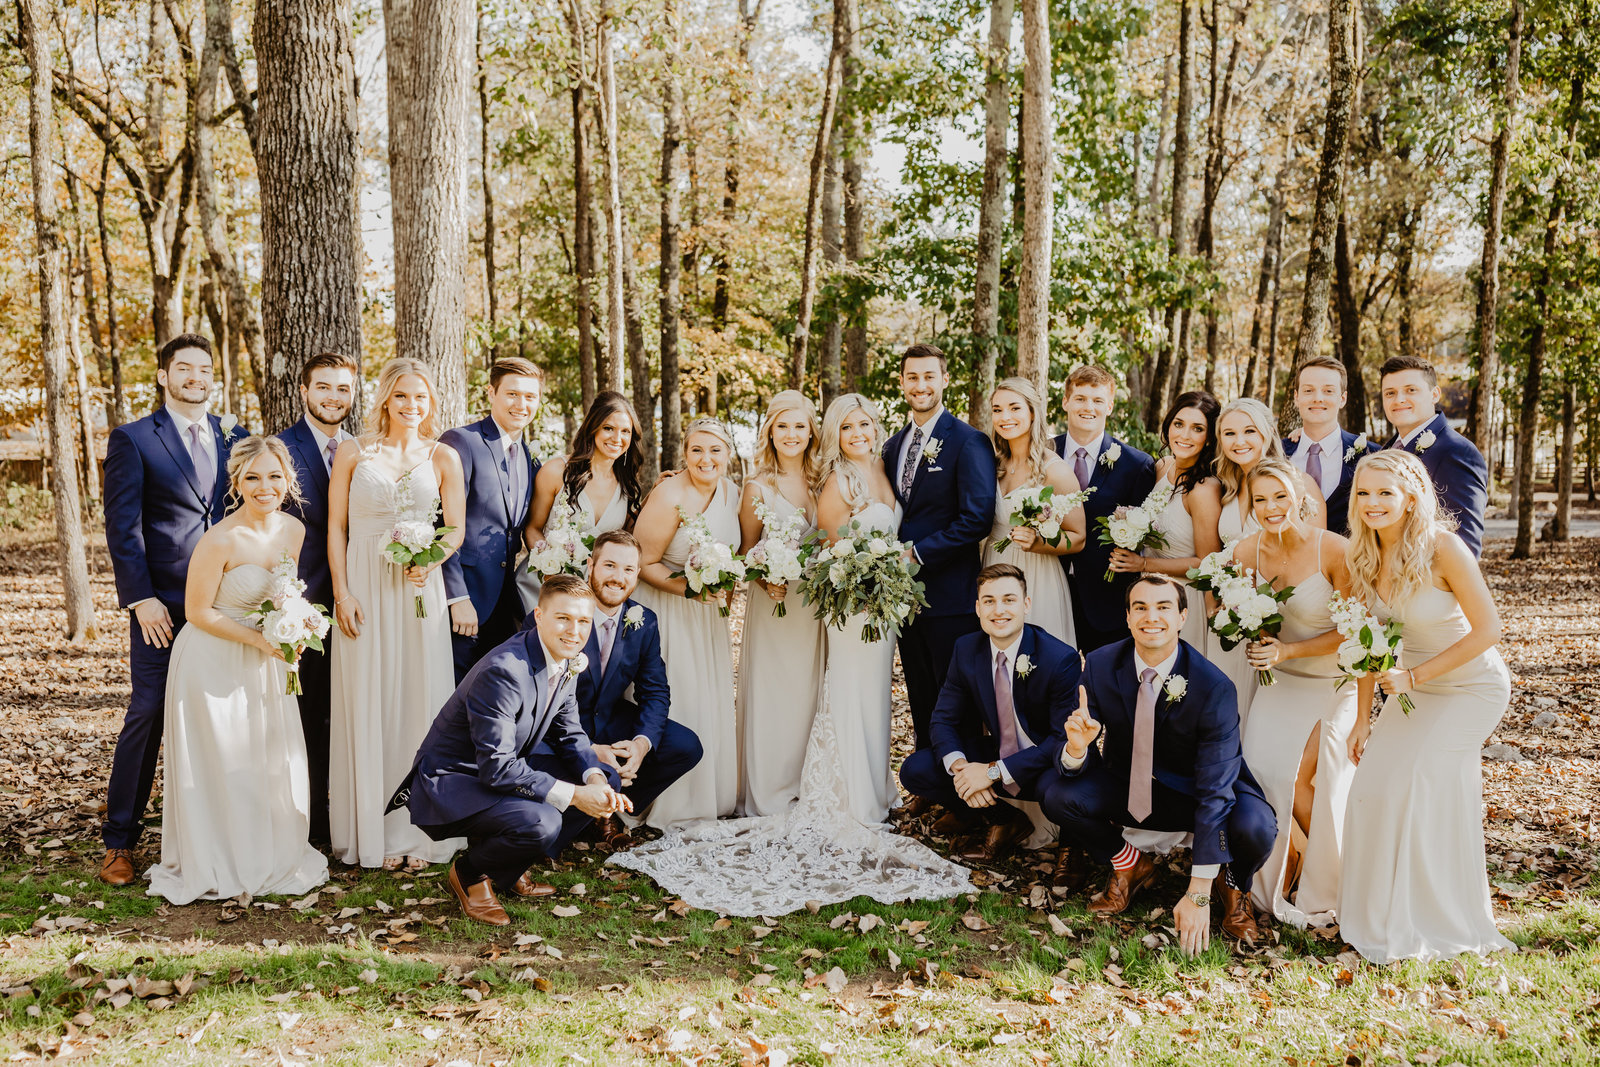 Full Bridal Party surrounds Bride and Groom at Saddle Woods Farm